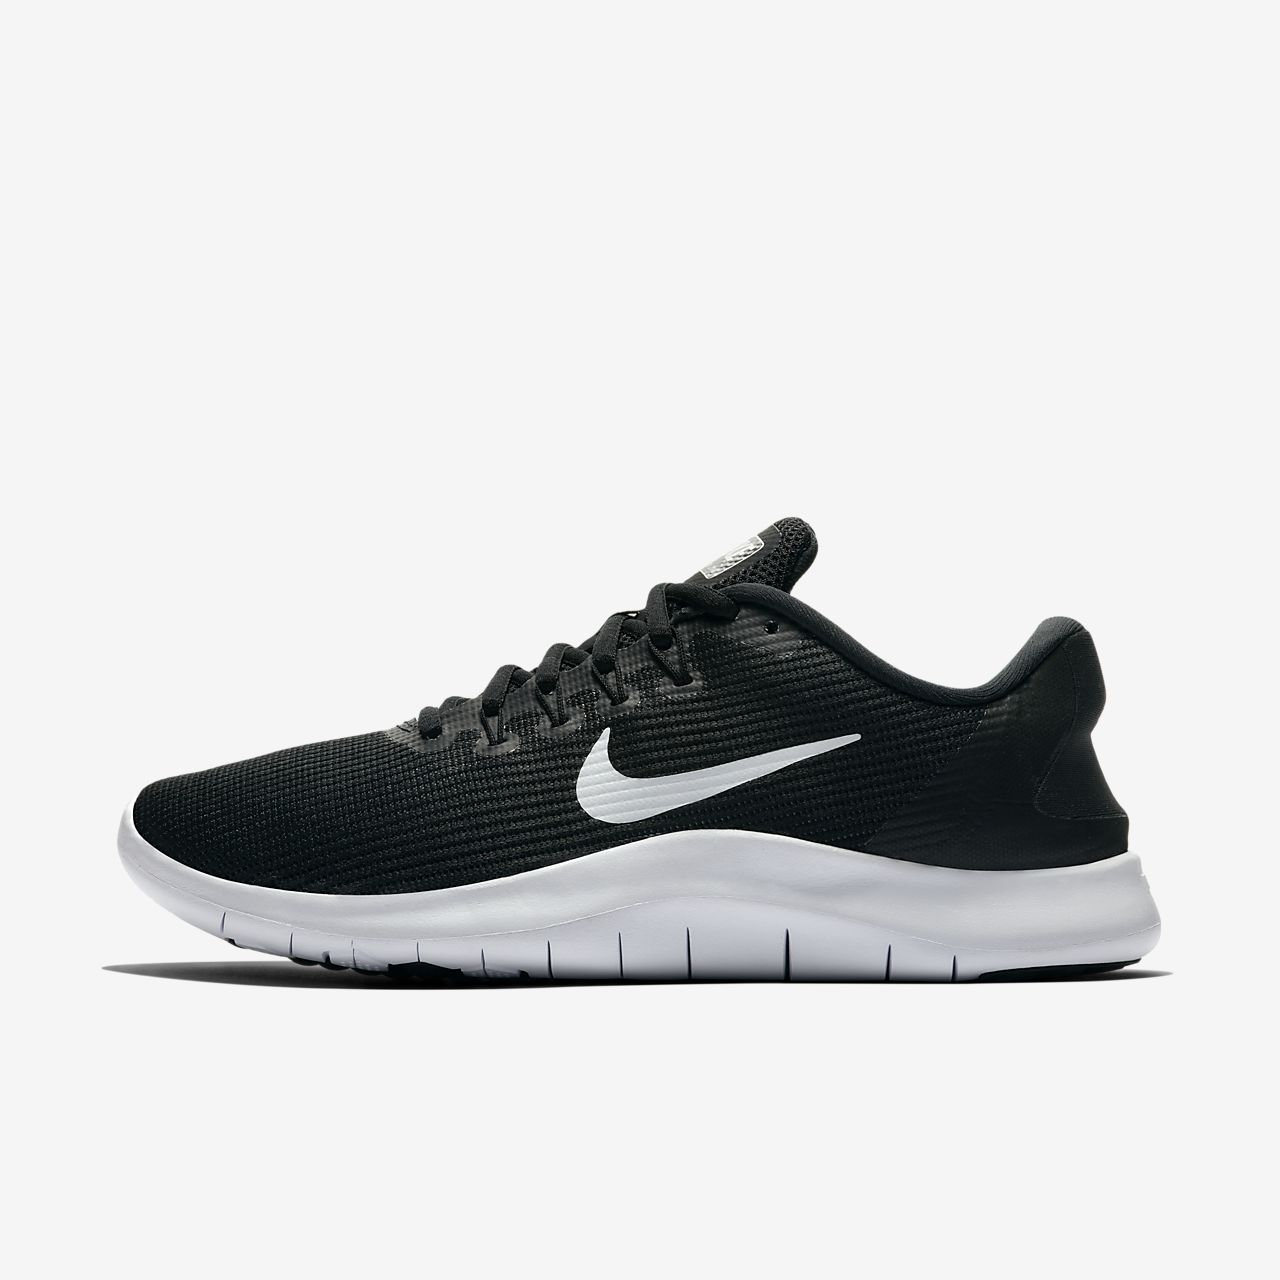 be86ccbd2737f Nike Flex RN 2018 Women's Running Shoe. Nike.com GB